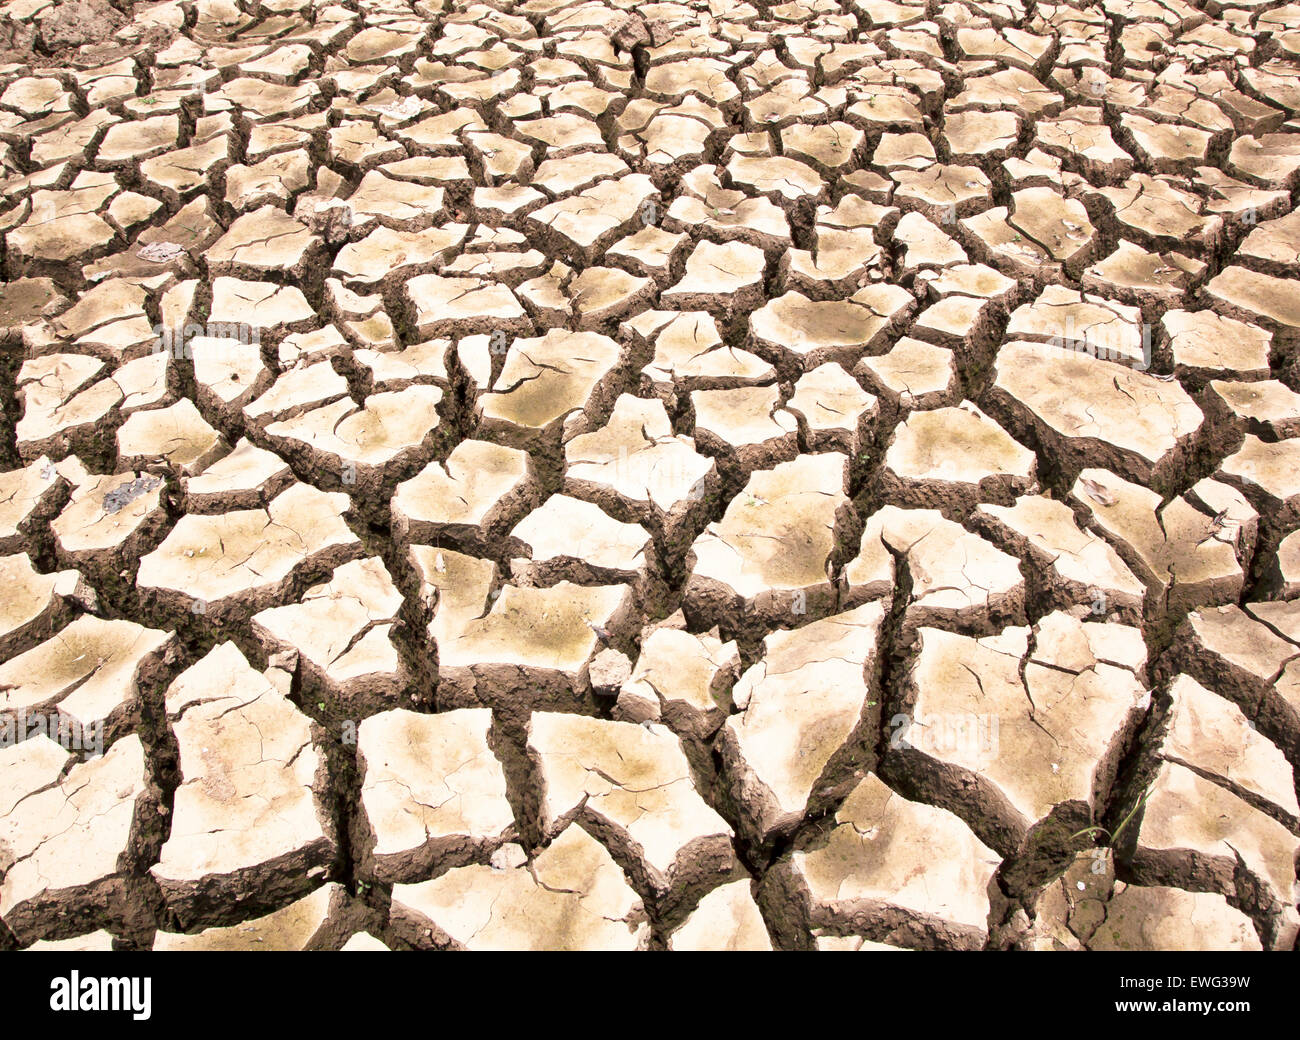 Drought-parched soil, natural abstract background texture. - Stock Image